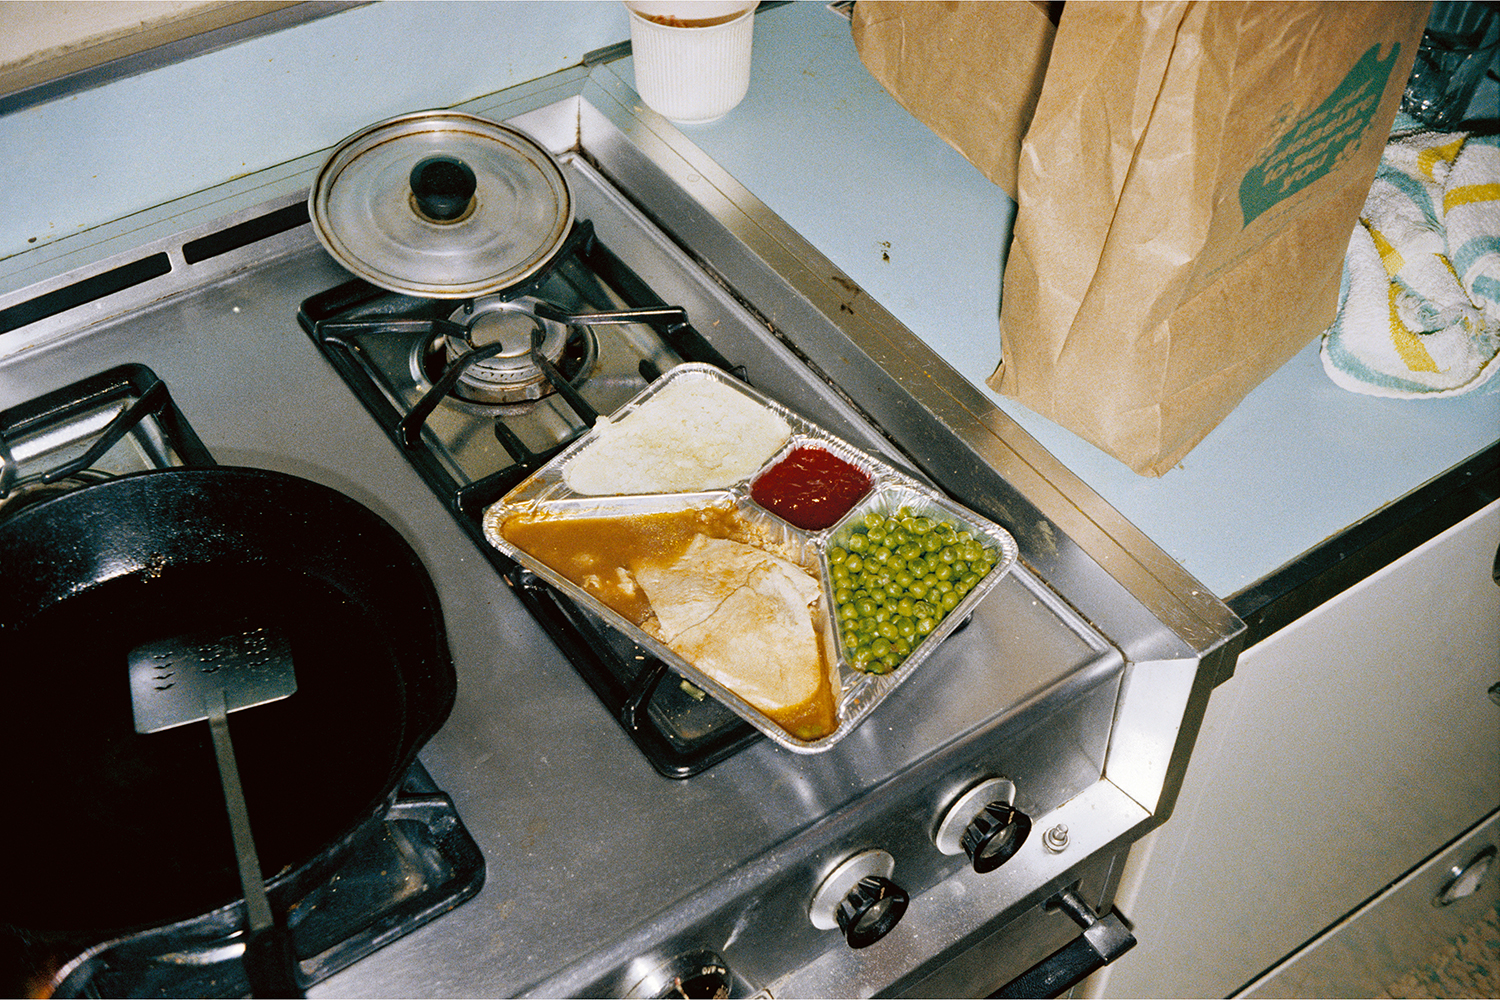 INTERVIEW: Stephen Shore: 'The current moment recontextualises the photos in American Surfaces'